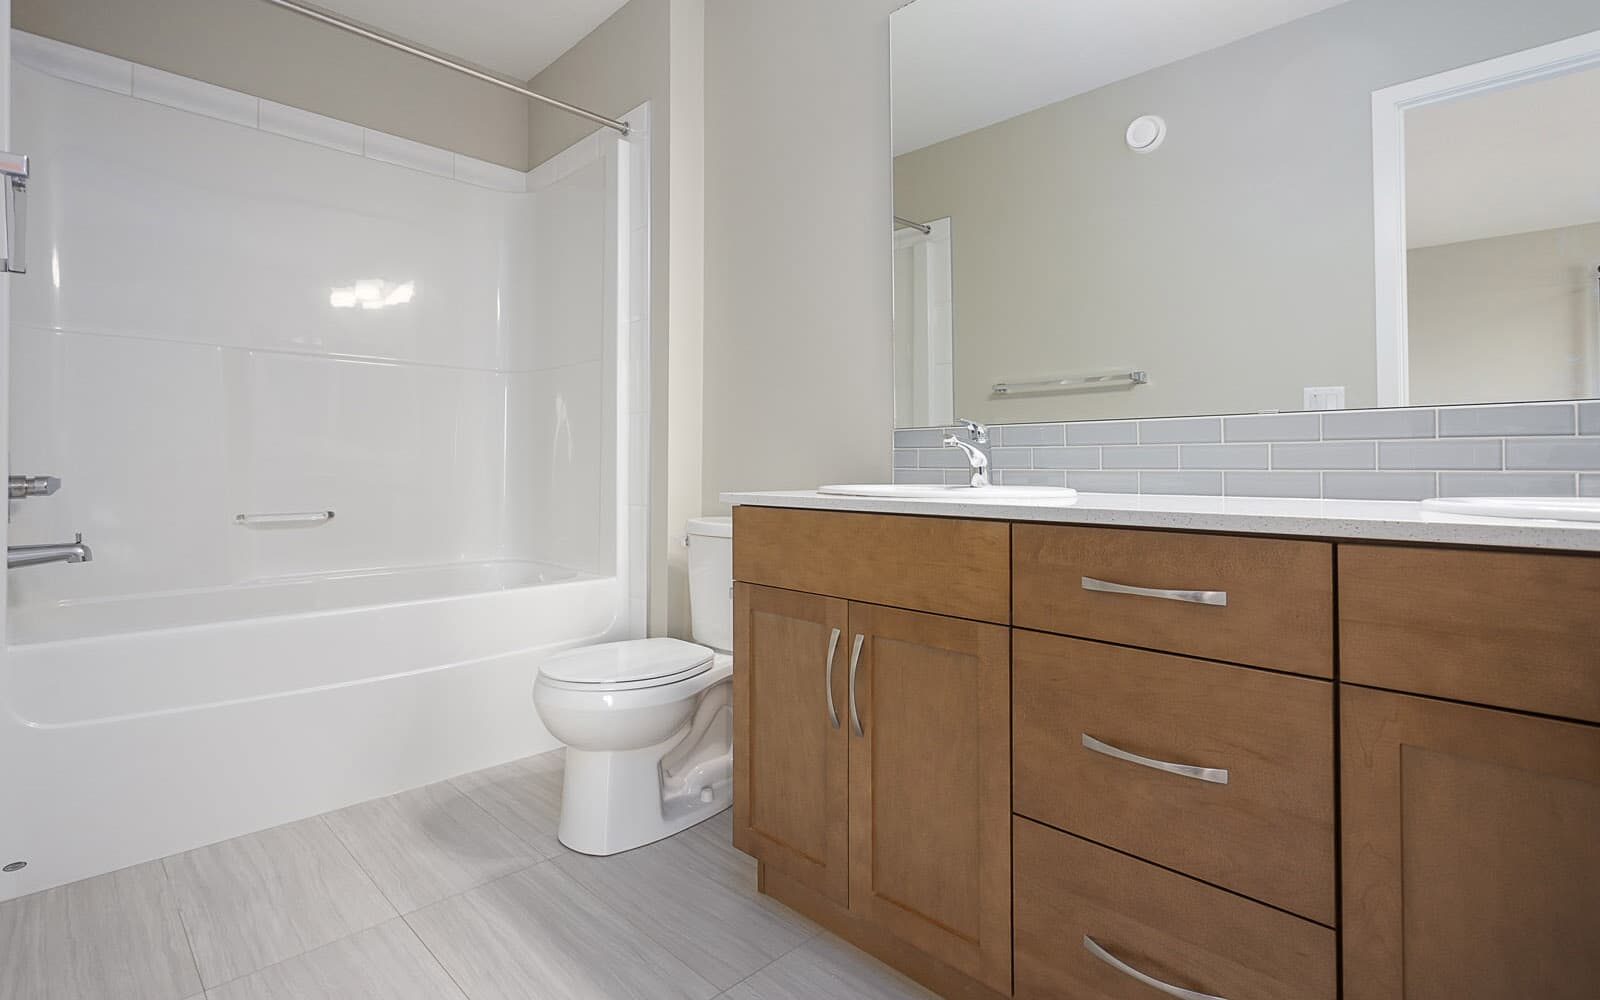 Ensuite bathroom in the Finlay duplex